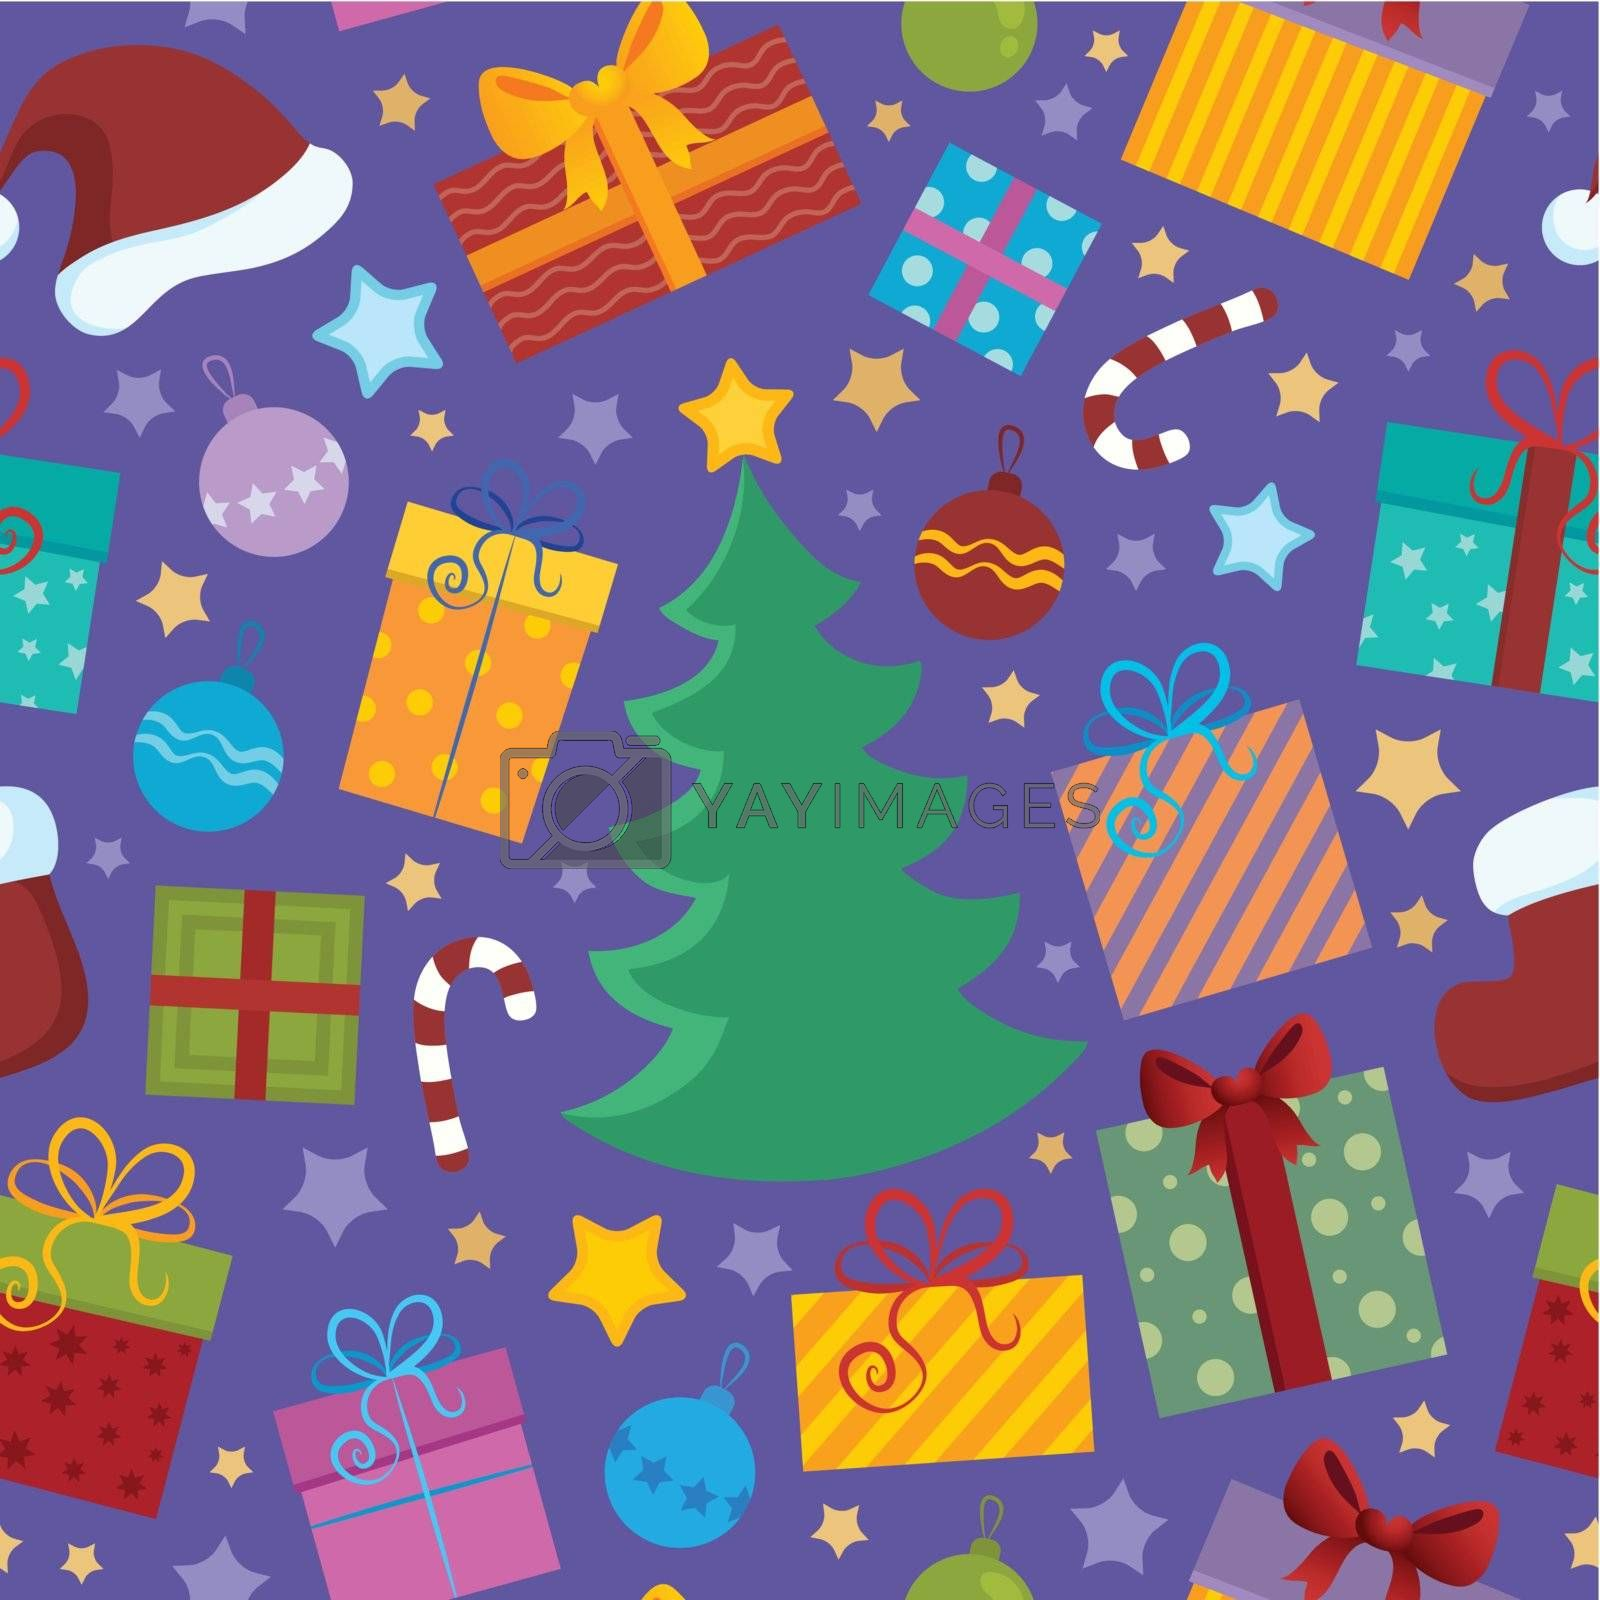 Seamless background Christmas 2 - vector illustration.